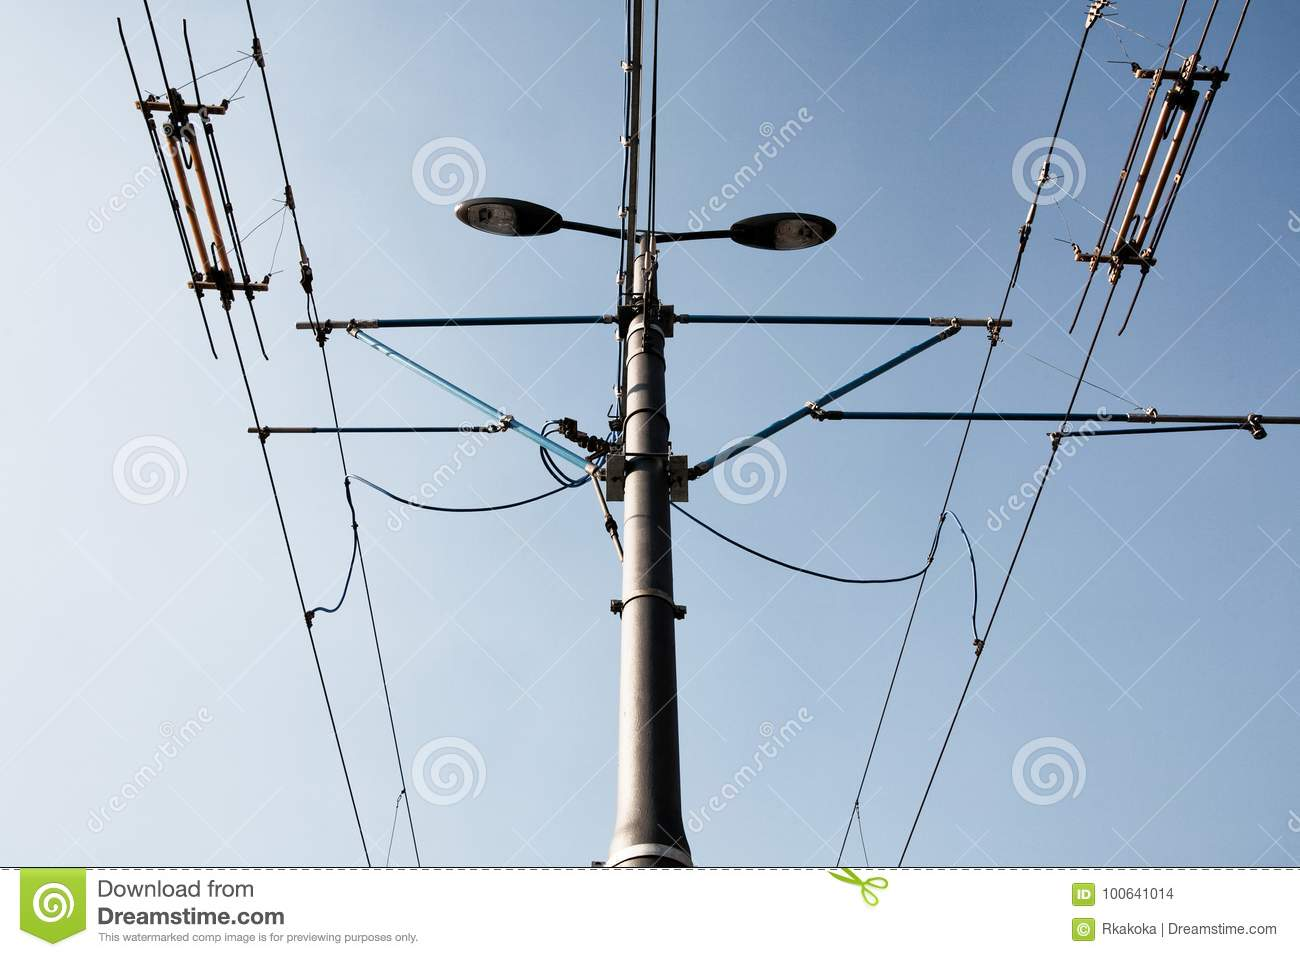 Single Street Lamp And Electric Wires Stock Photo - Image of lamp ...